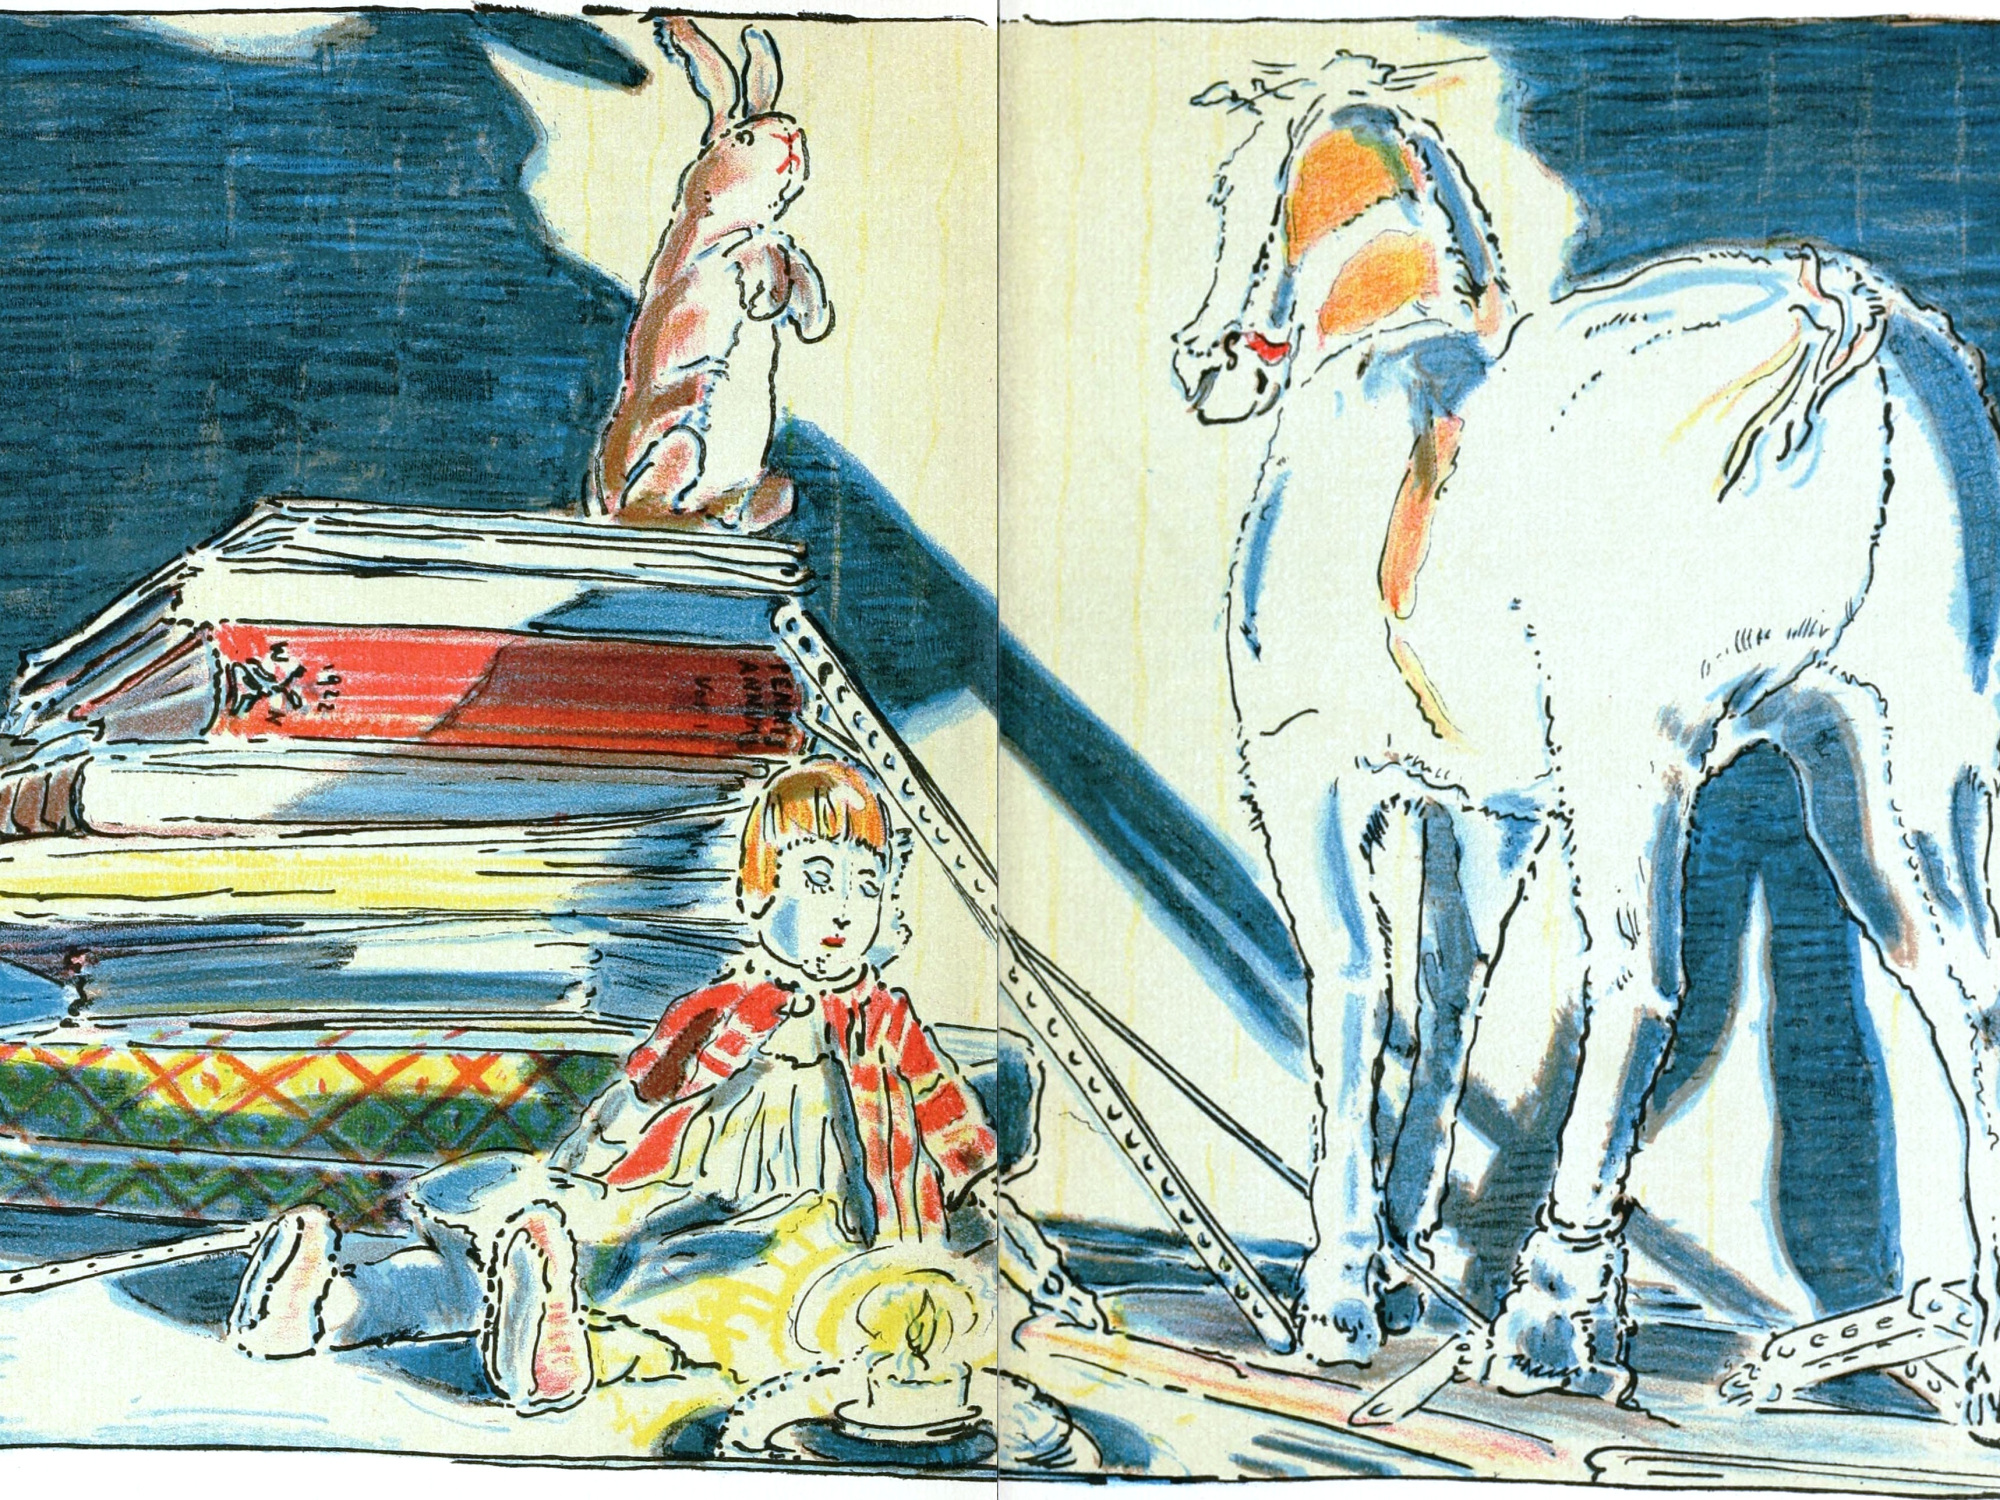 Pages from inside the book The Velveteen Rabbit, picturing the Rabbit talking to the Skin Horse.